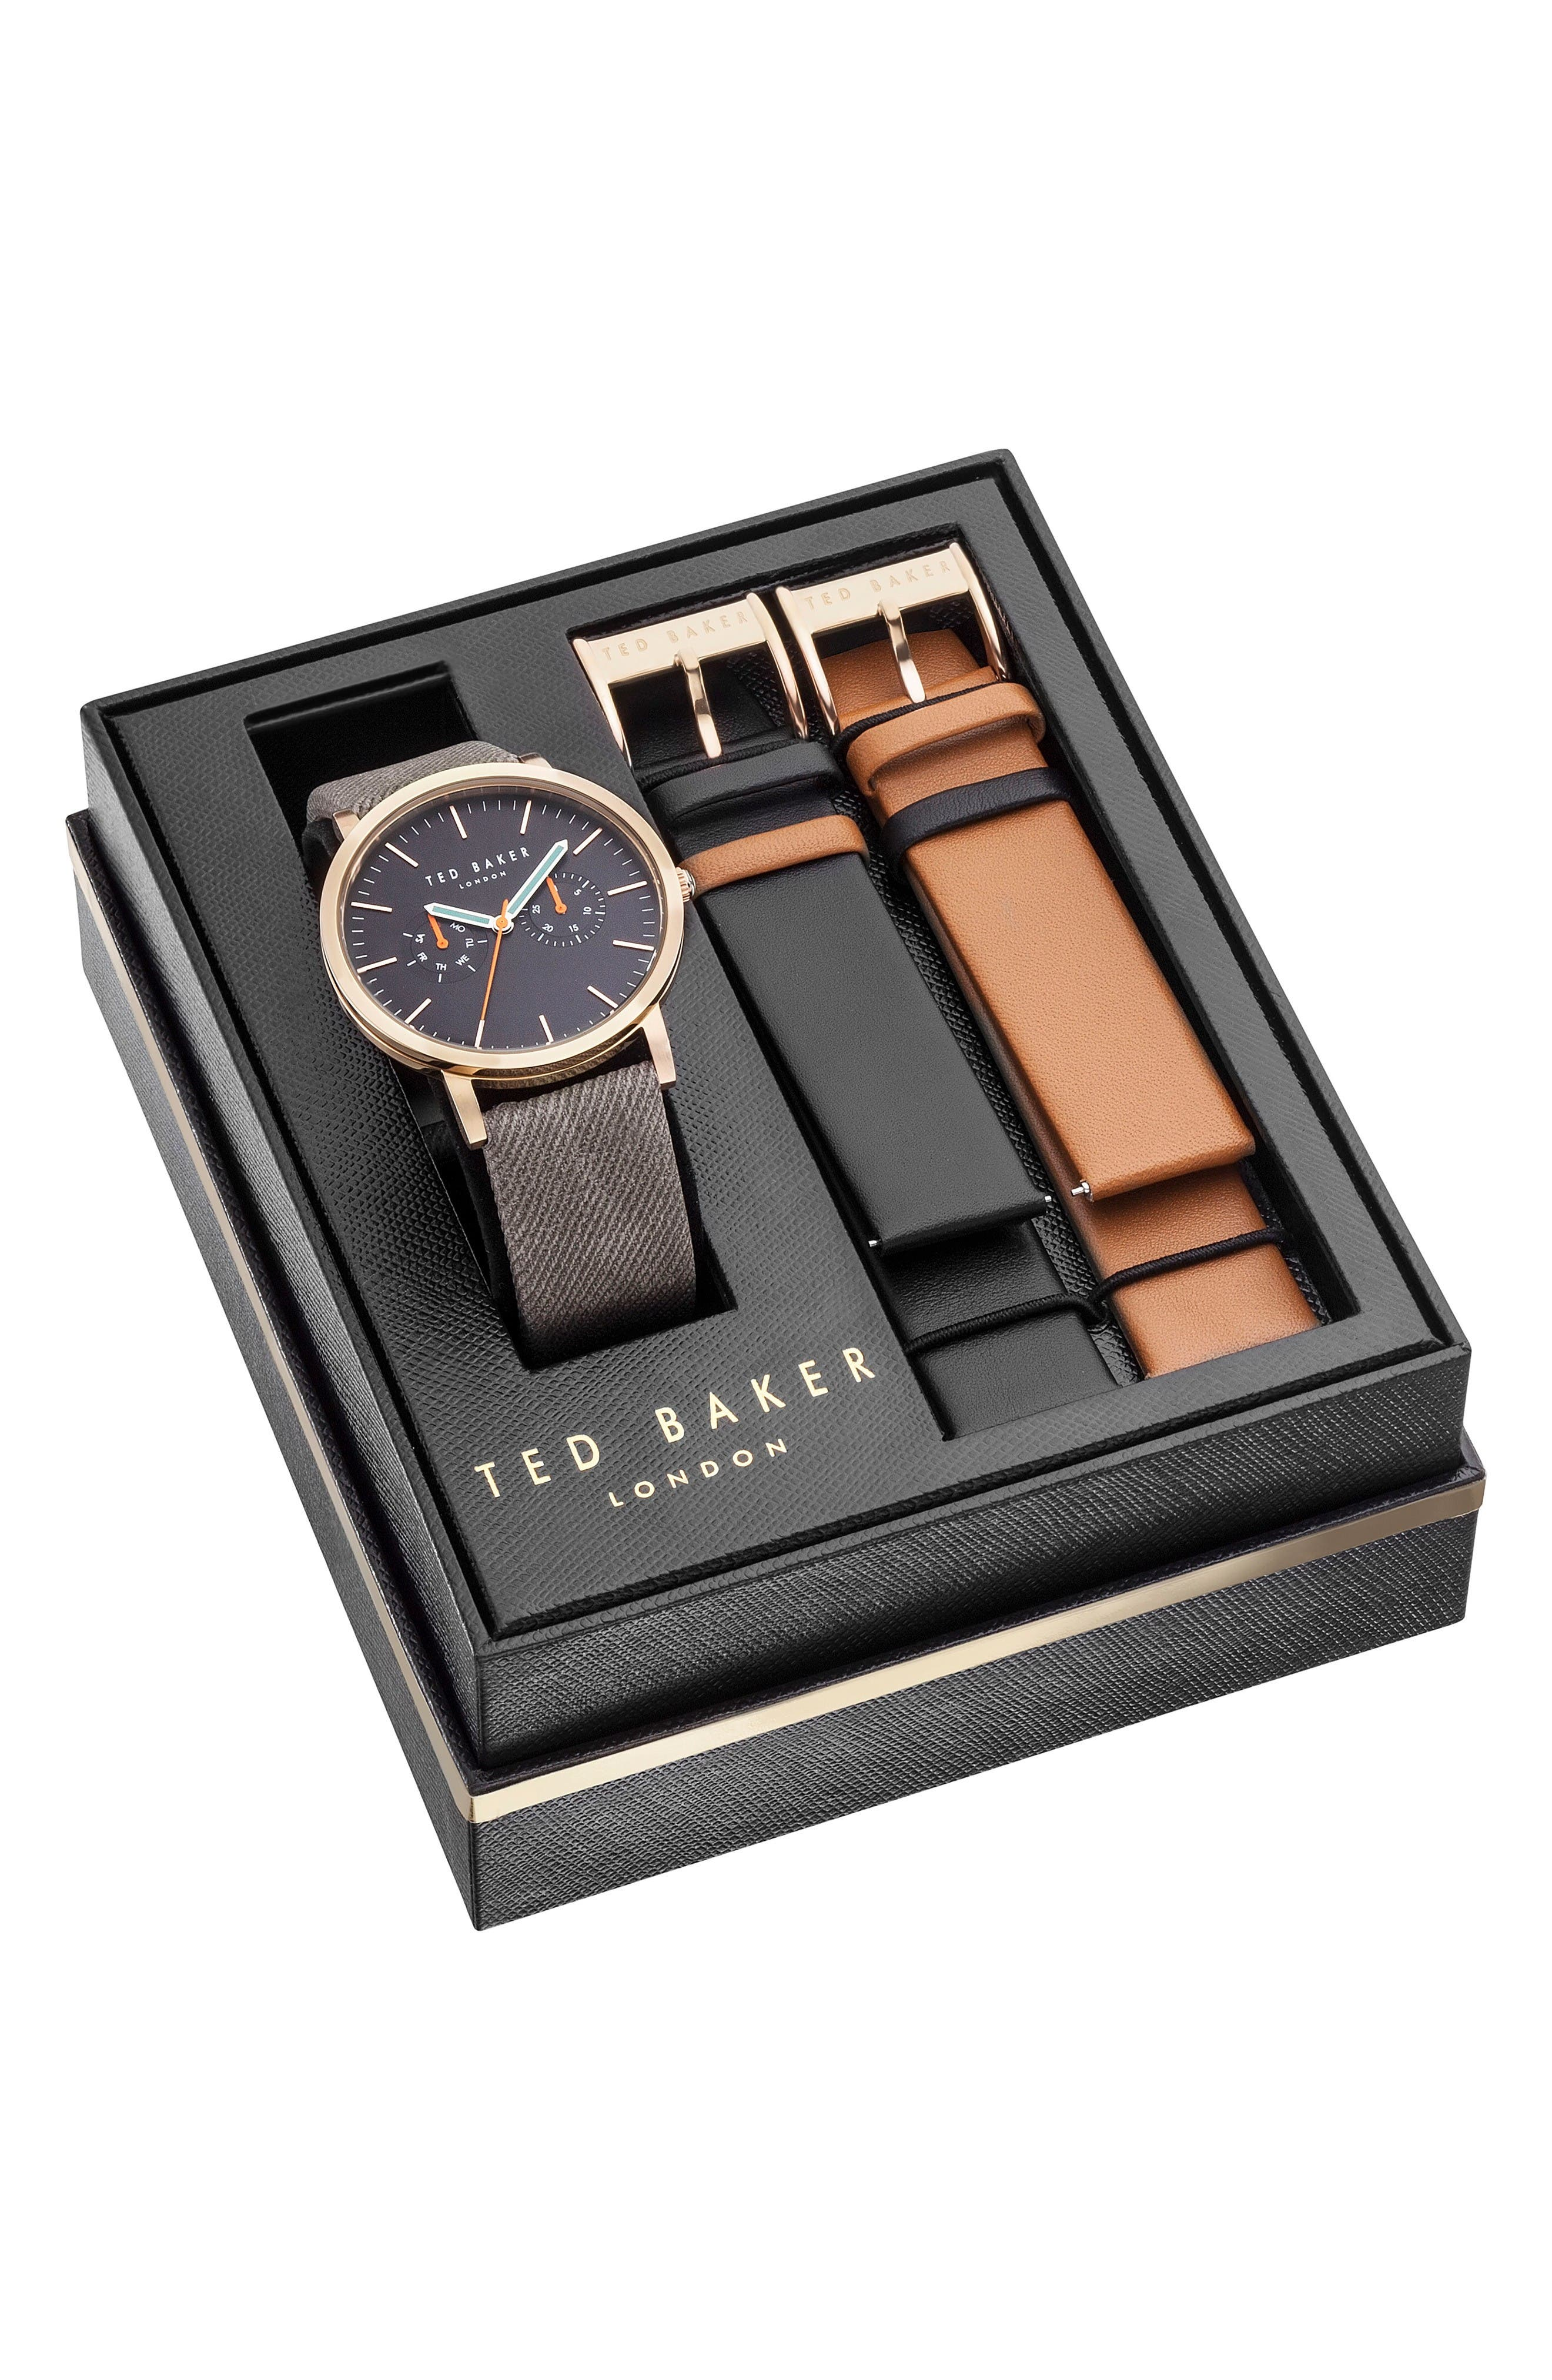 TED BAKER LONDON Brit Canvas & Leather Strap Watch Set, 42mm